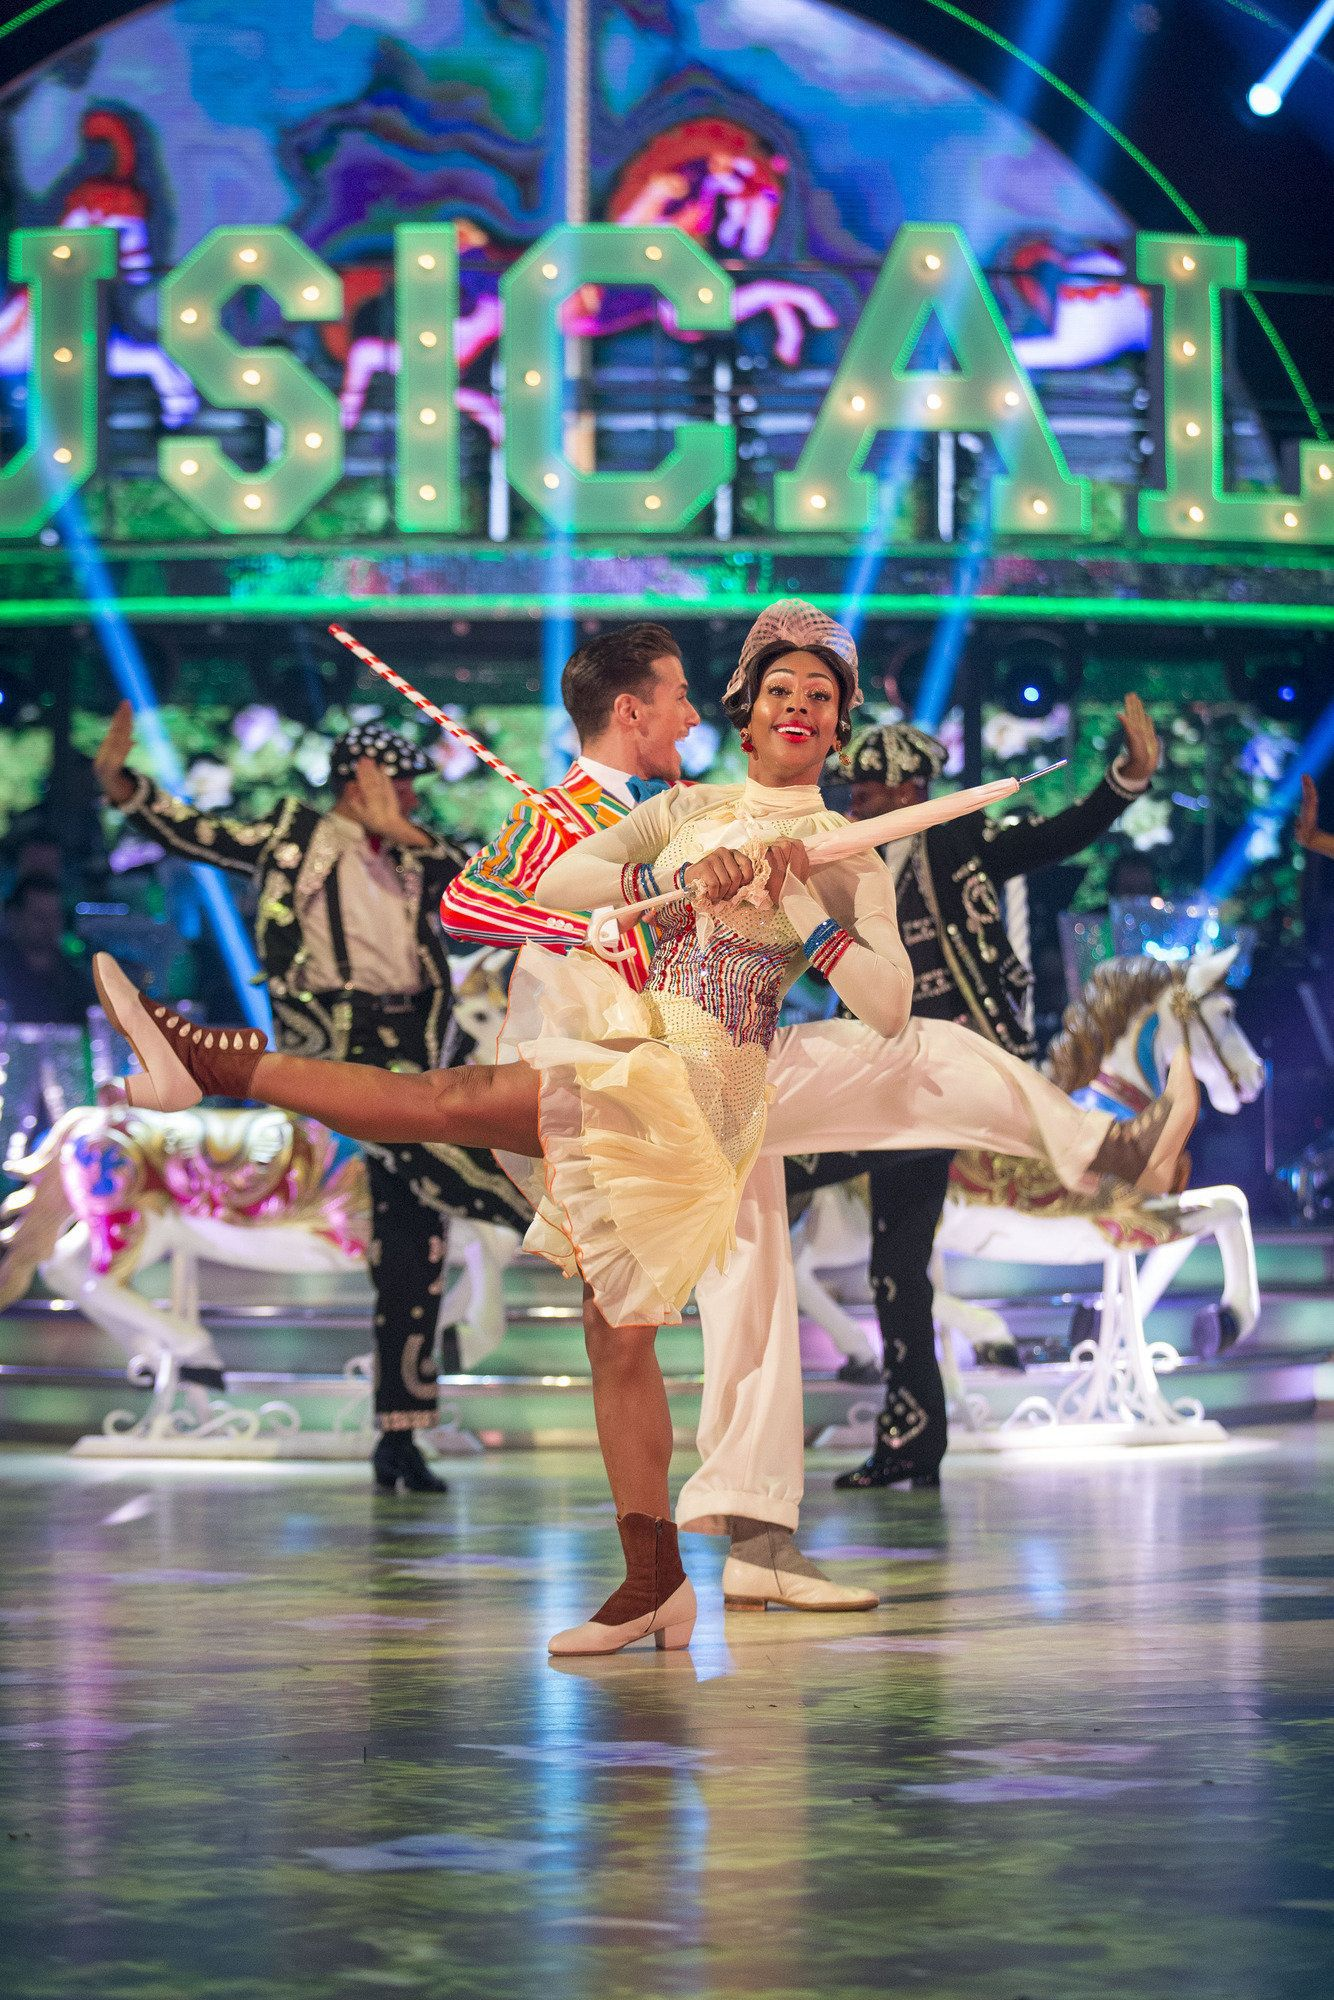 Strictly Come Dancing Semi Final Songs And Dances Revealed Strictly Come Dancing Strictly Come Dancing 2017 Dance